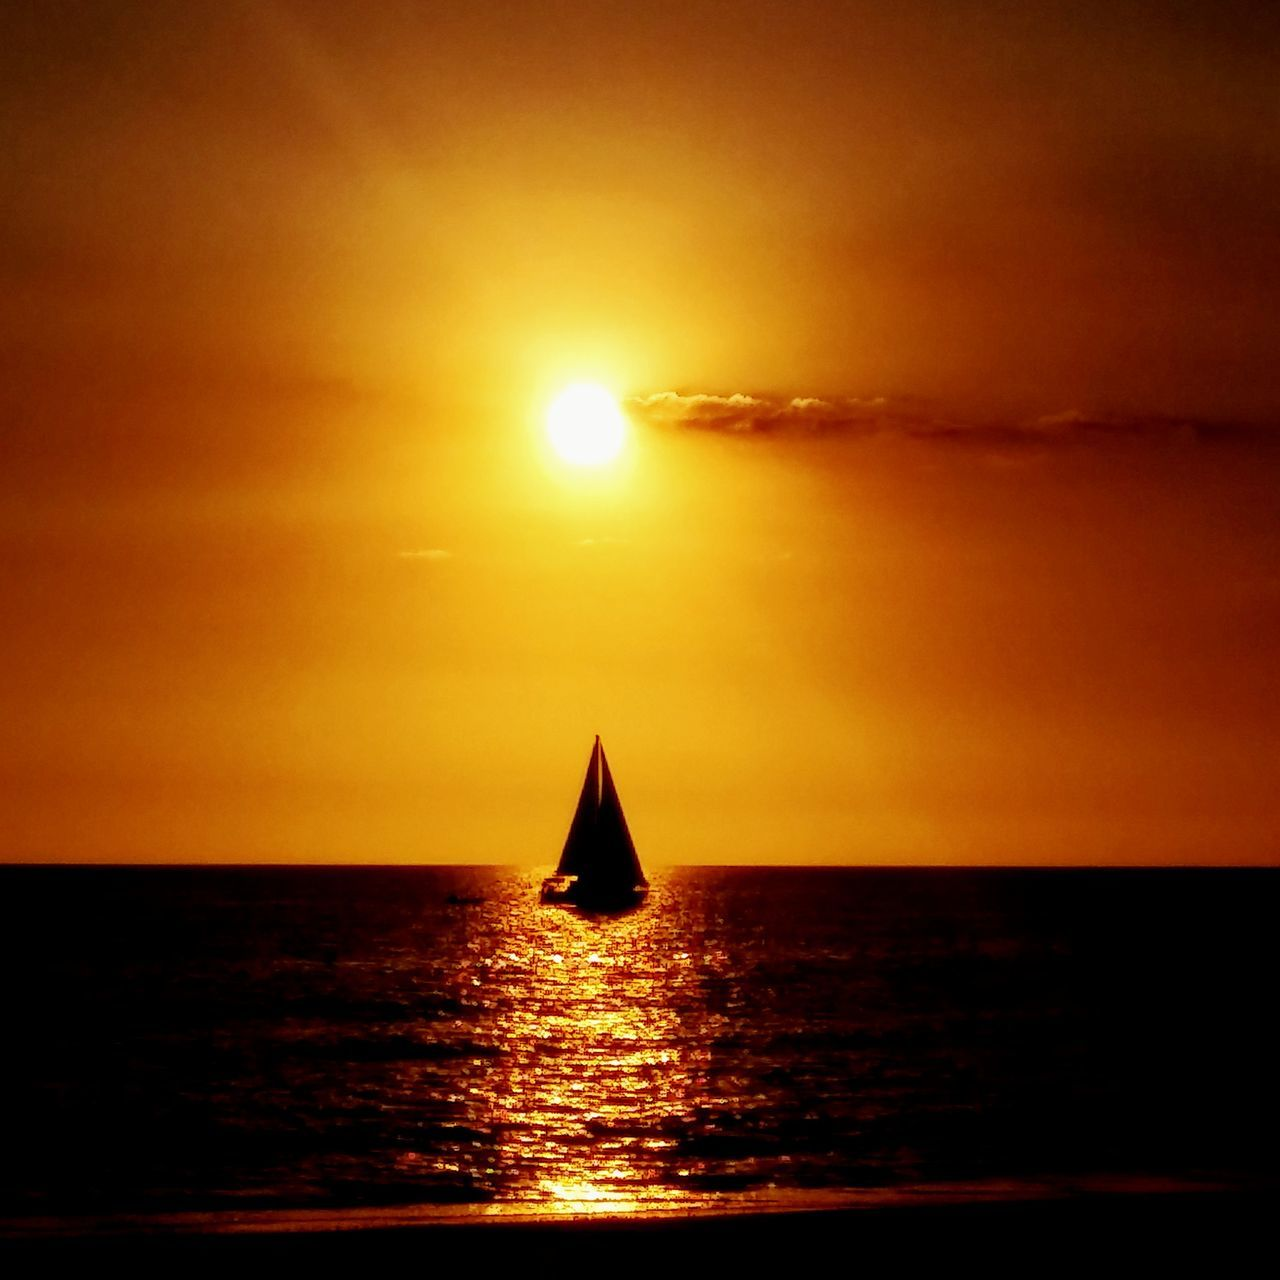 sunset, sun, orange color, sea, silhouette, beauty in nature, water, scenics, sunlight, sky, reflection, nature, tranquility, no people, tranquil scene, outdoors, waterfront, nautical vessel, horizon over water, day